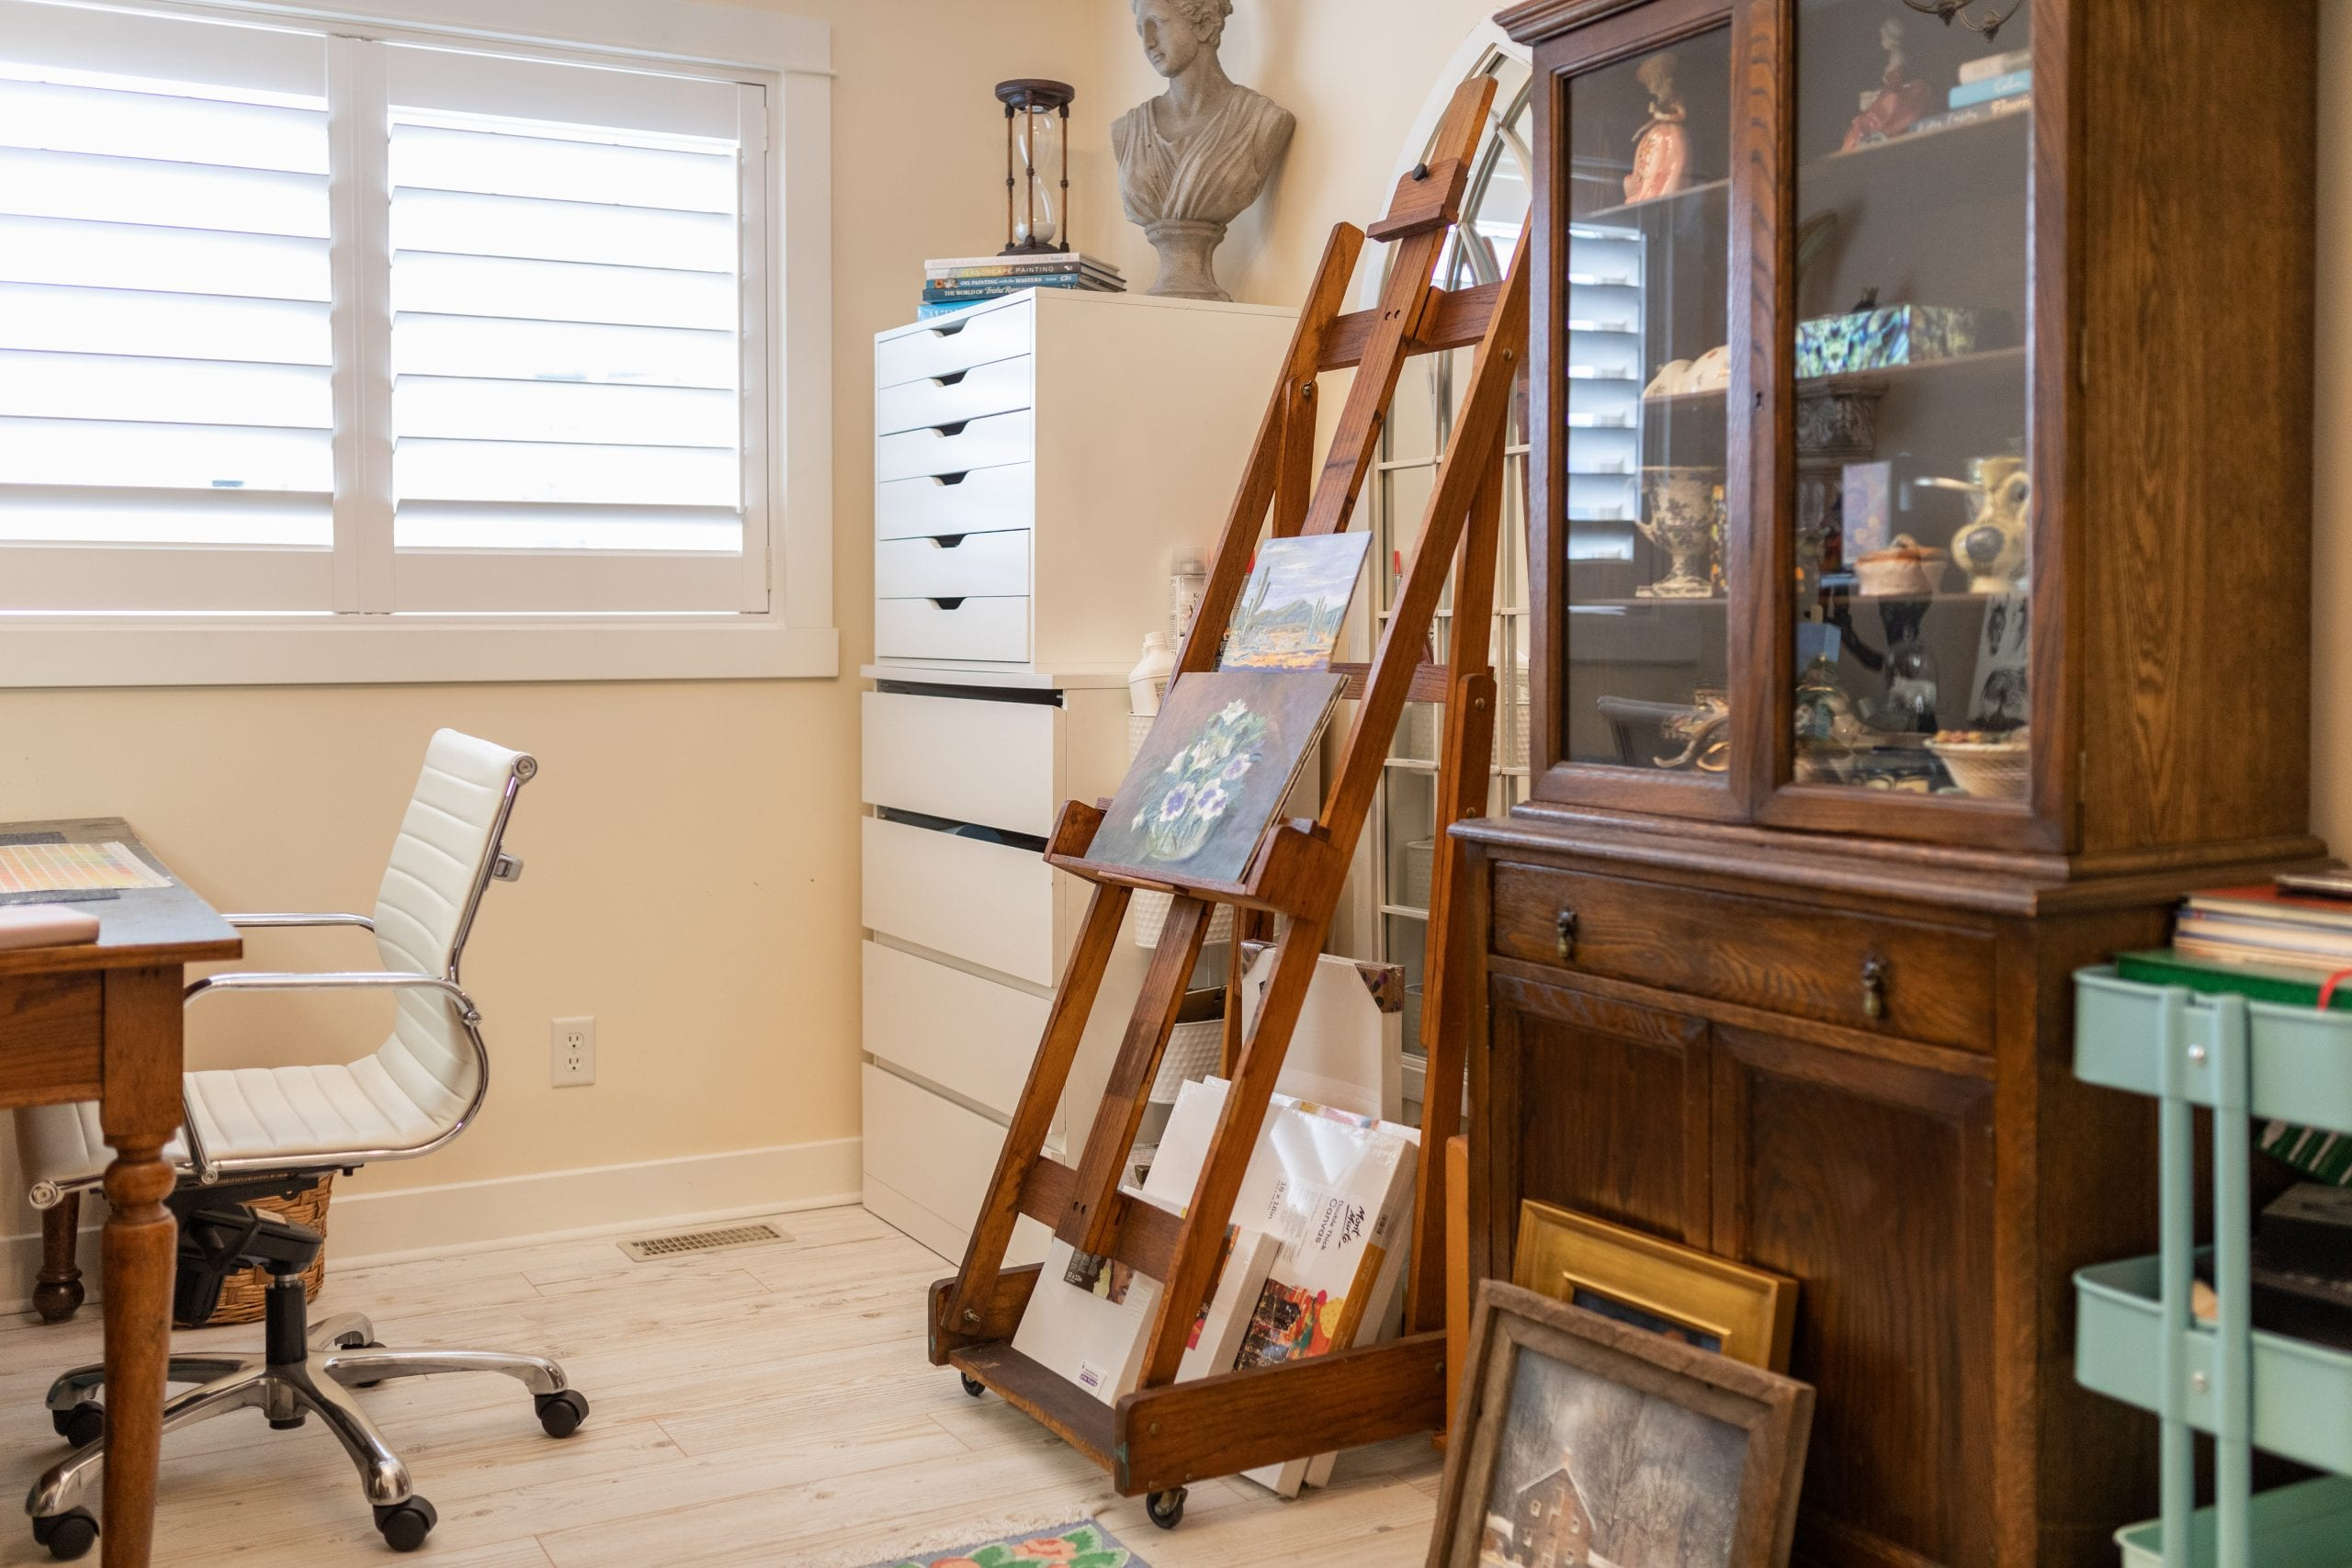 Peggy, Jillian Harris' mother's easel set up in her office with a painting of flowers on the easel.